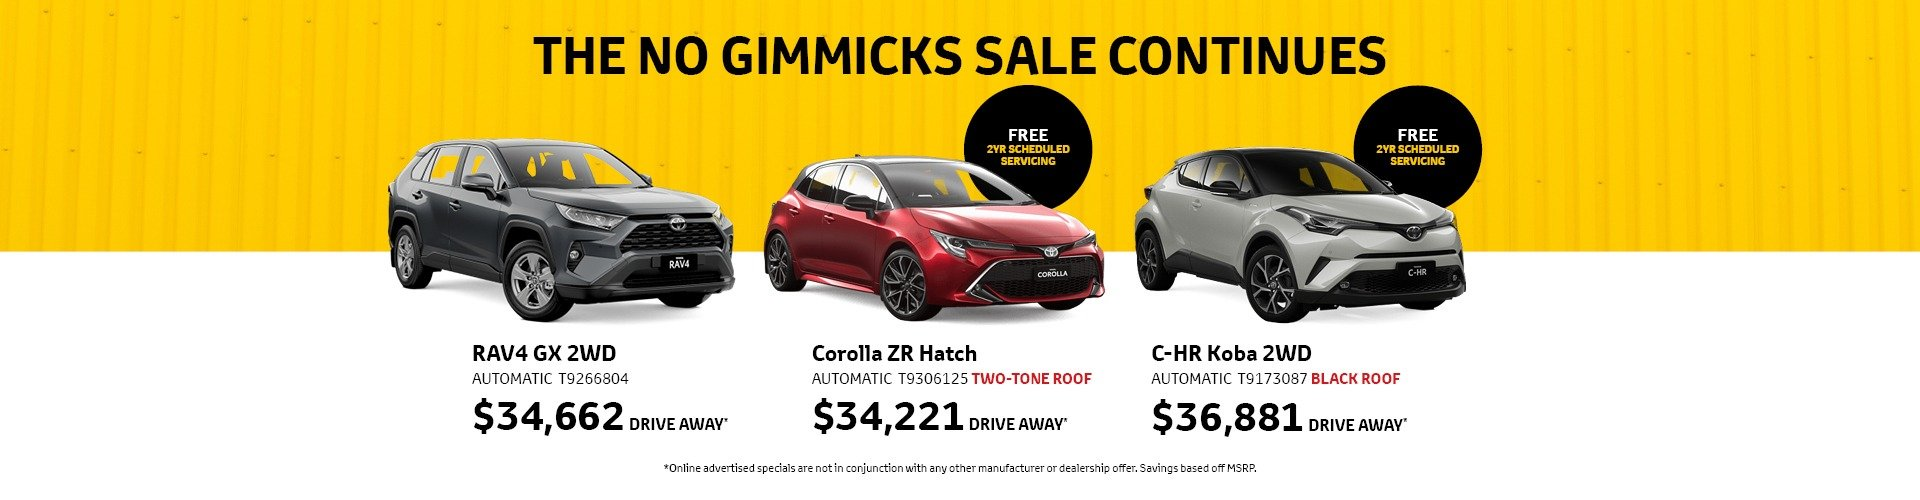 Cardiff Toyota No Gimmicks Sale Continues